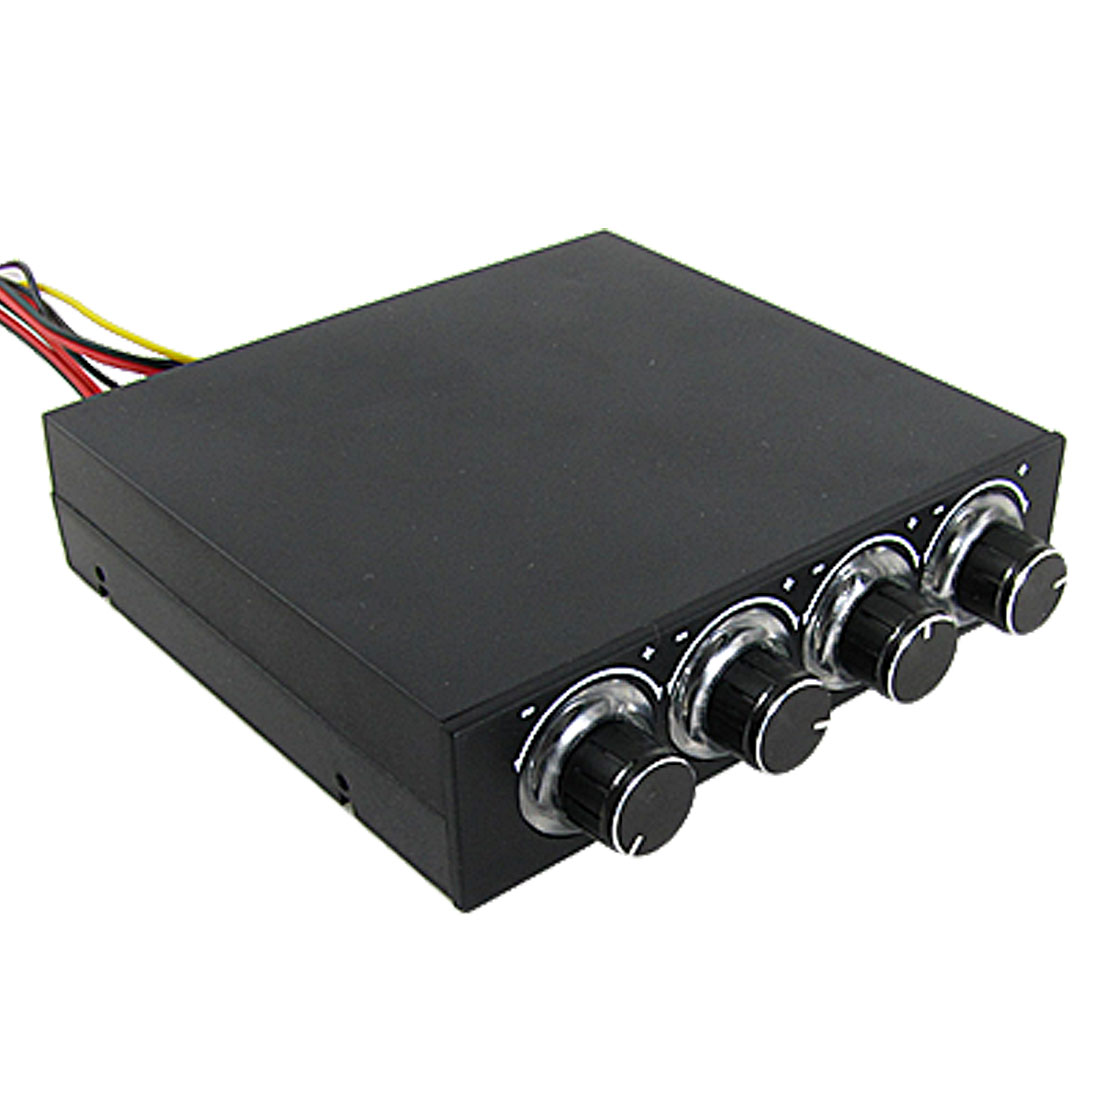 Adjustable 4 Channel 4 Pin Connector Fan Speed Controller for PC